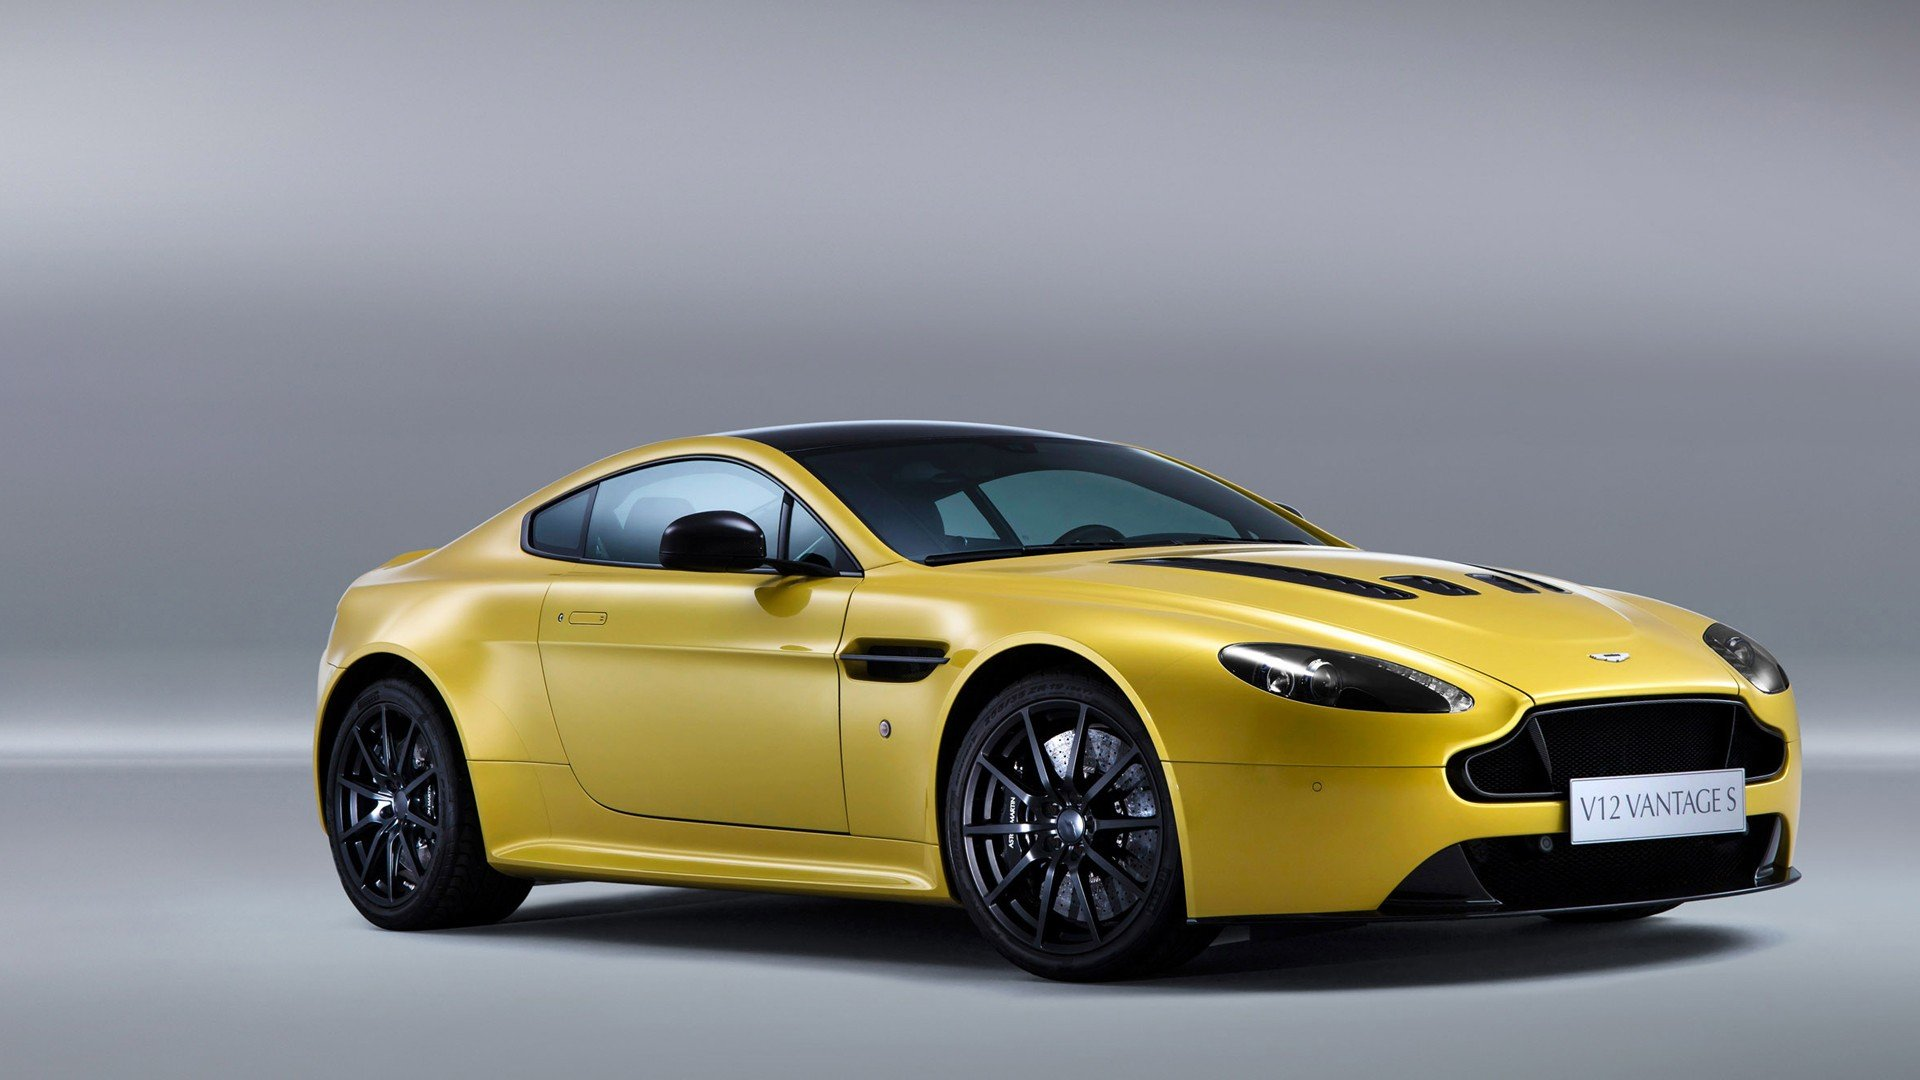 Aston Martin V12 Vantage Car Vehicle Yellow Cars Gray Background Hd Wallpapers Desktop And Mobile Images Photos